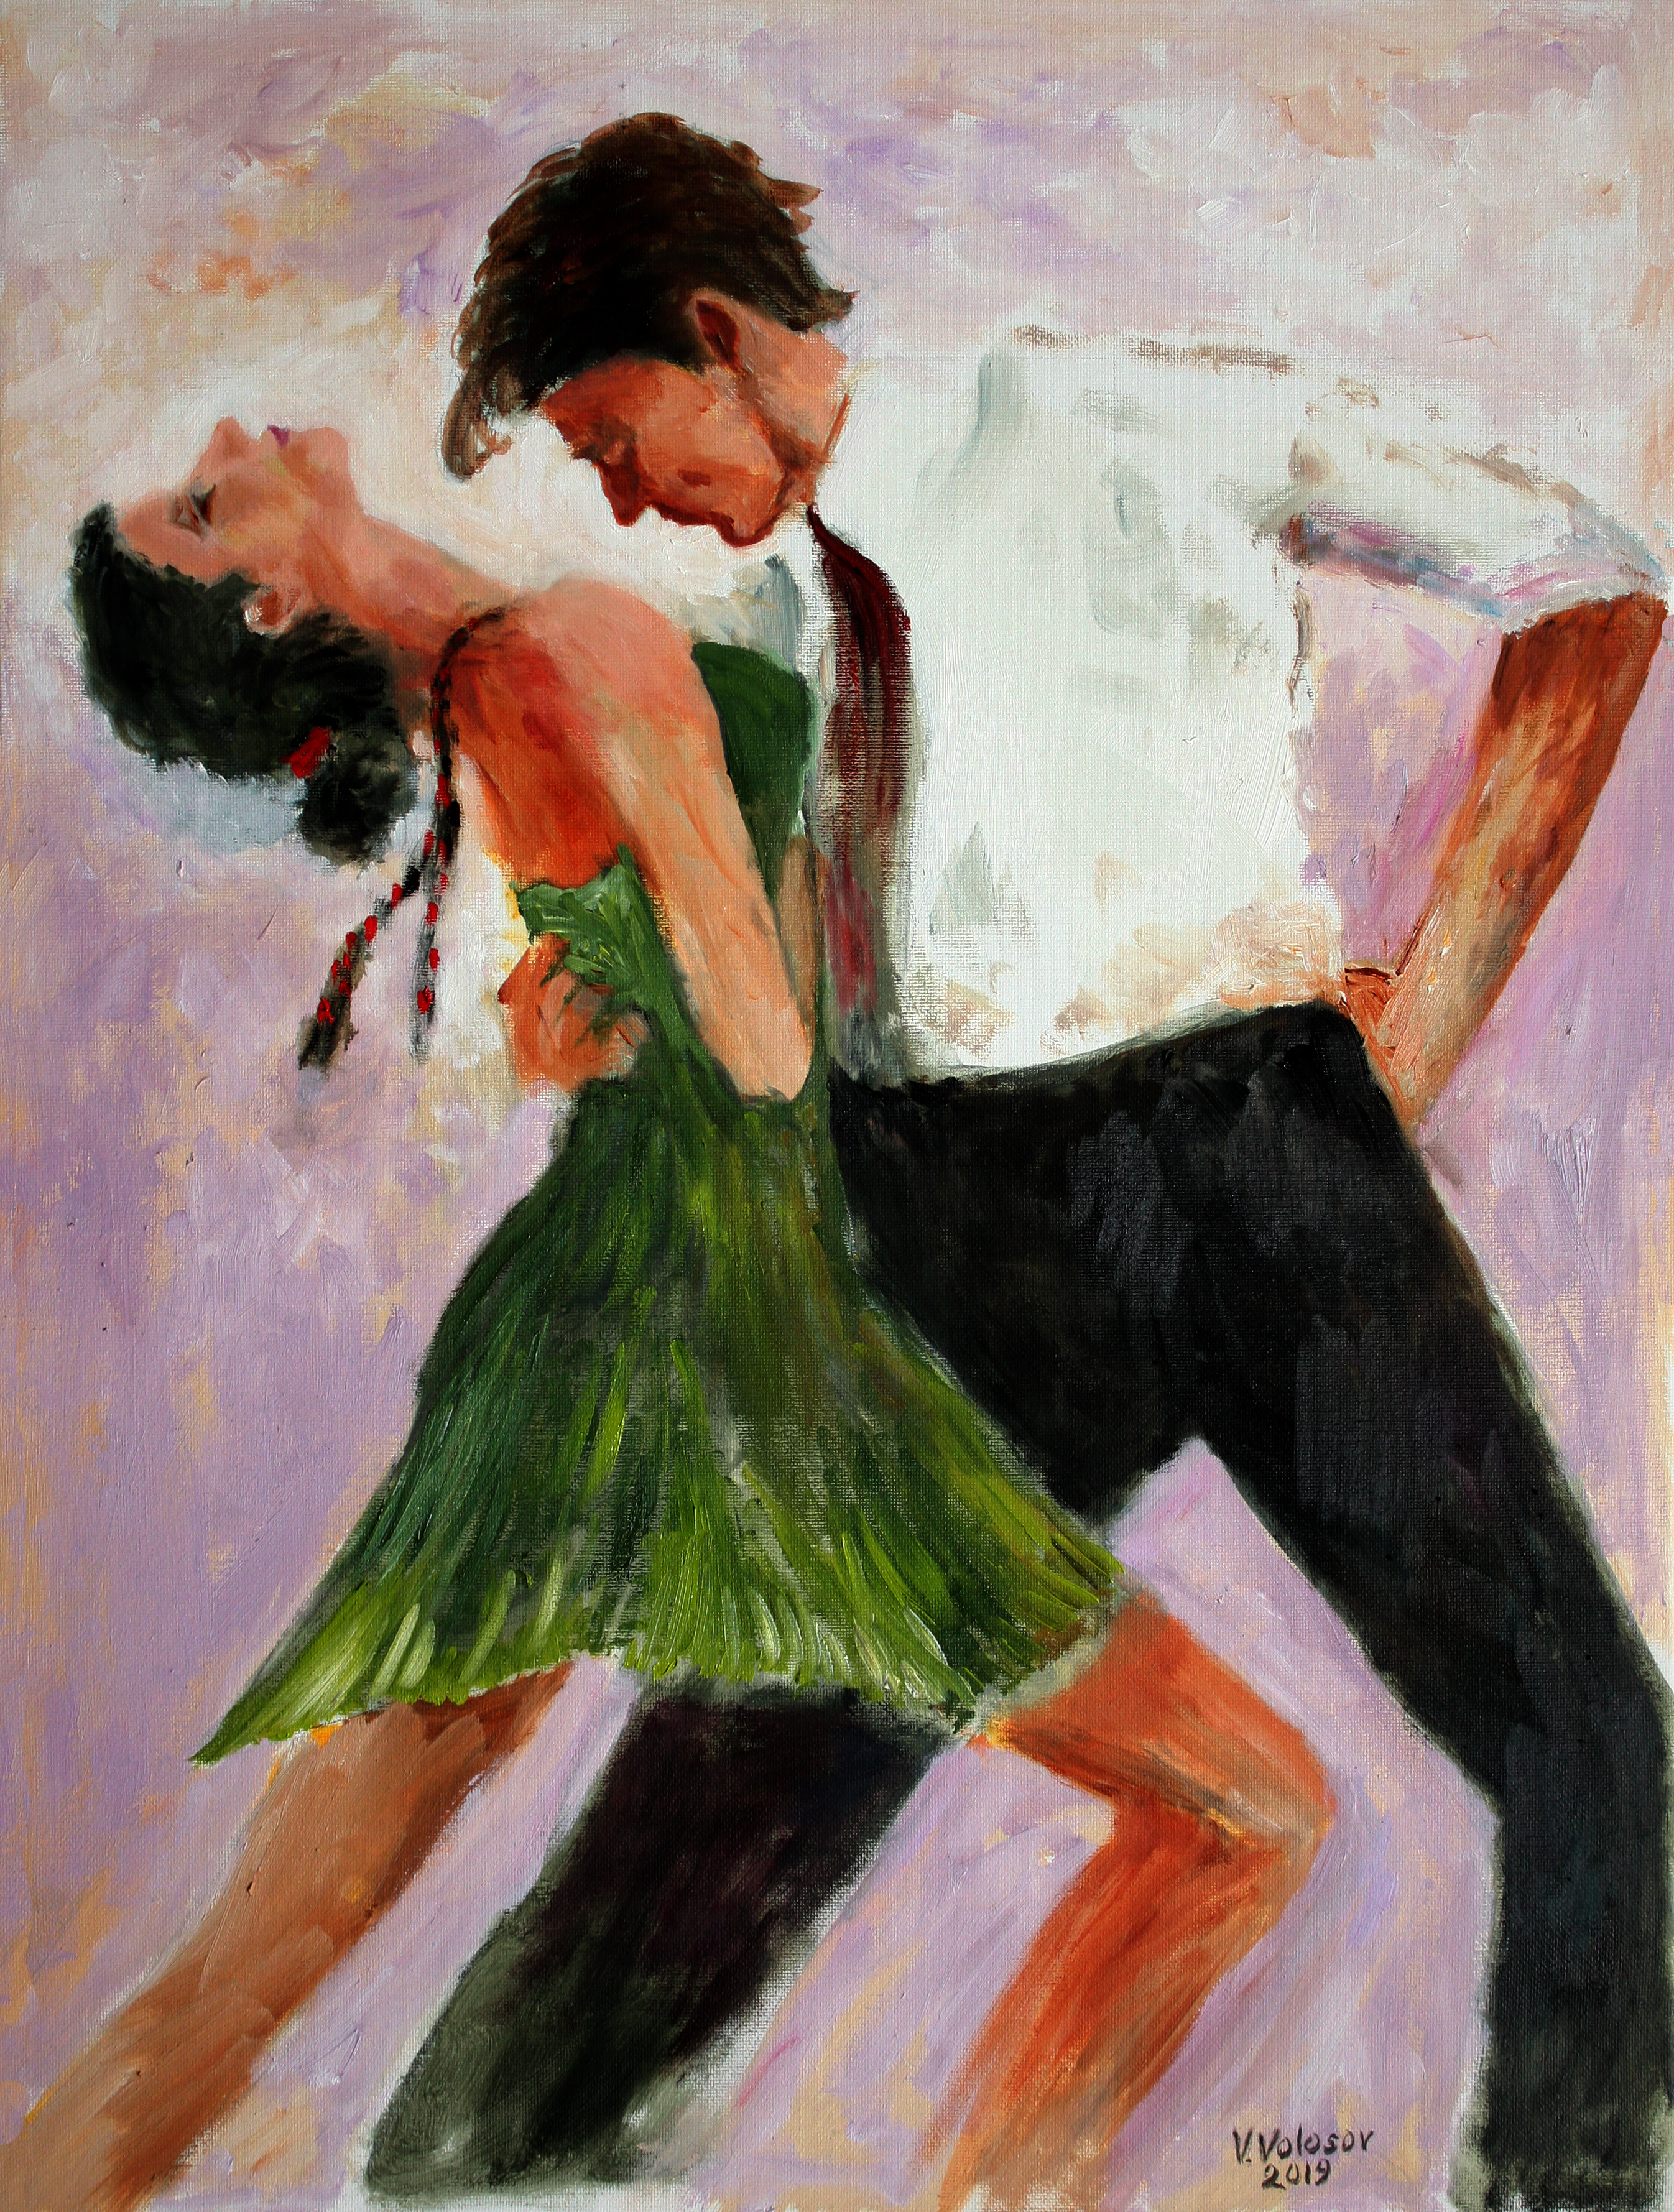 The Dance Oil Painting By Vladimir Volosov Absolutearts Com